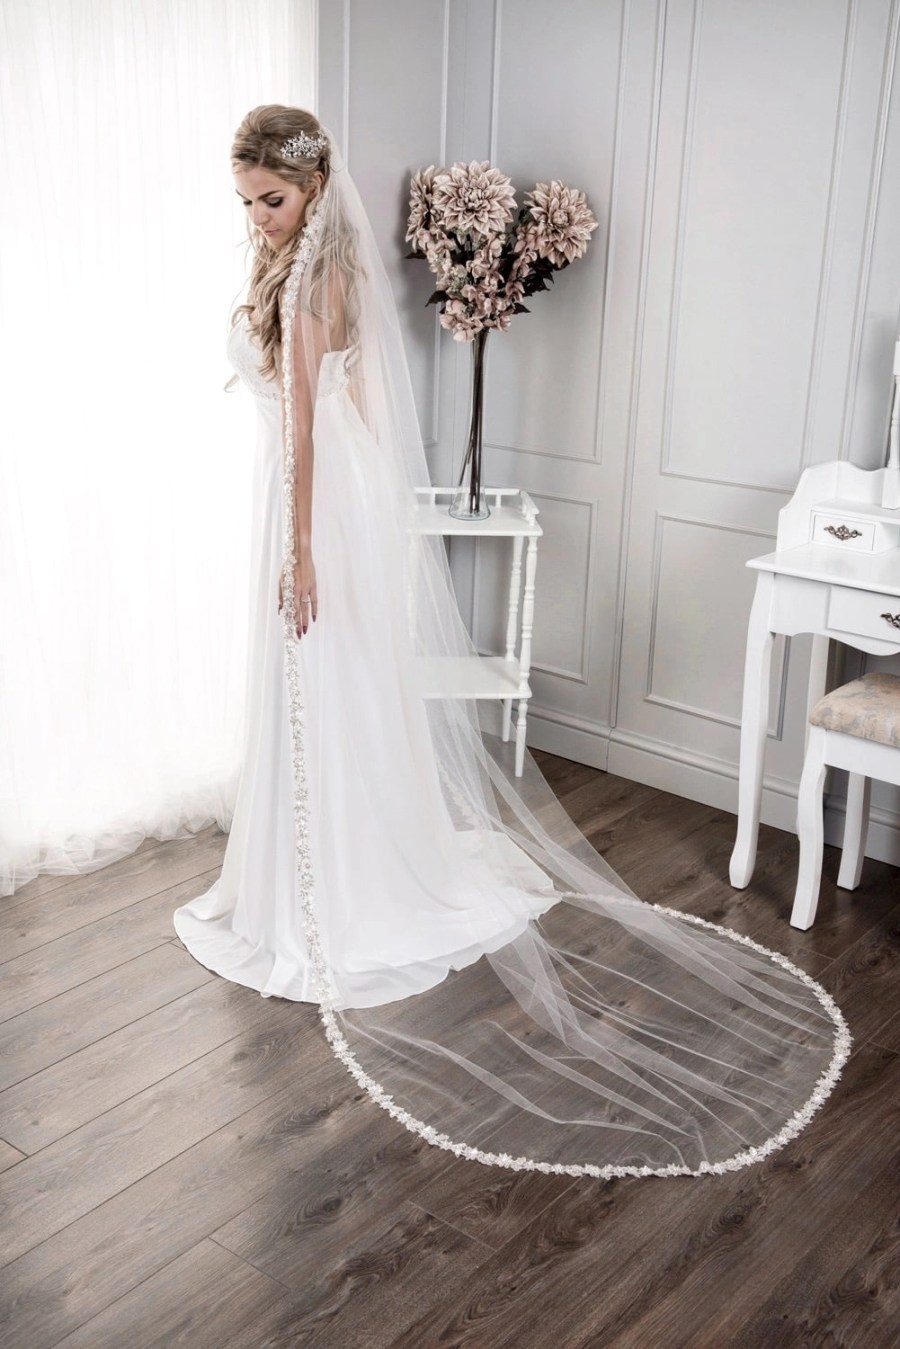 Bride wearing long chapel length single layer veil with a sparkly silver lace edge